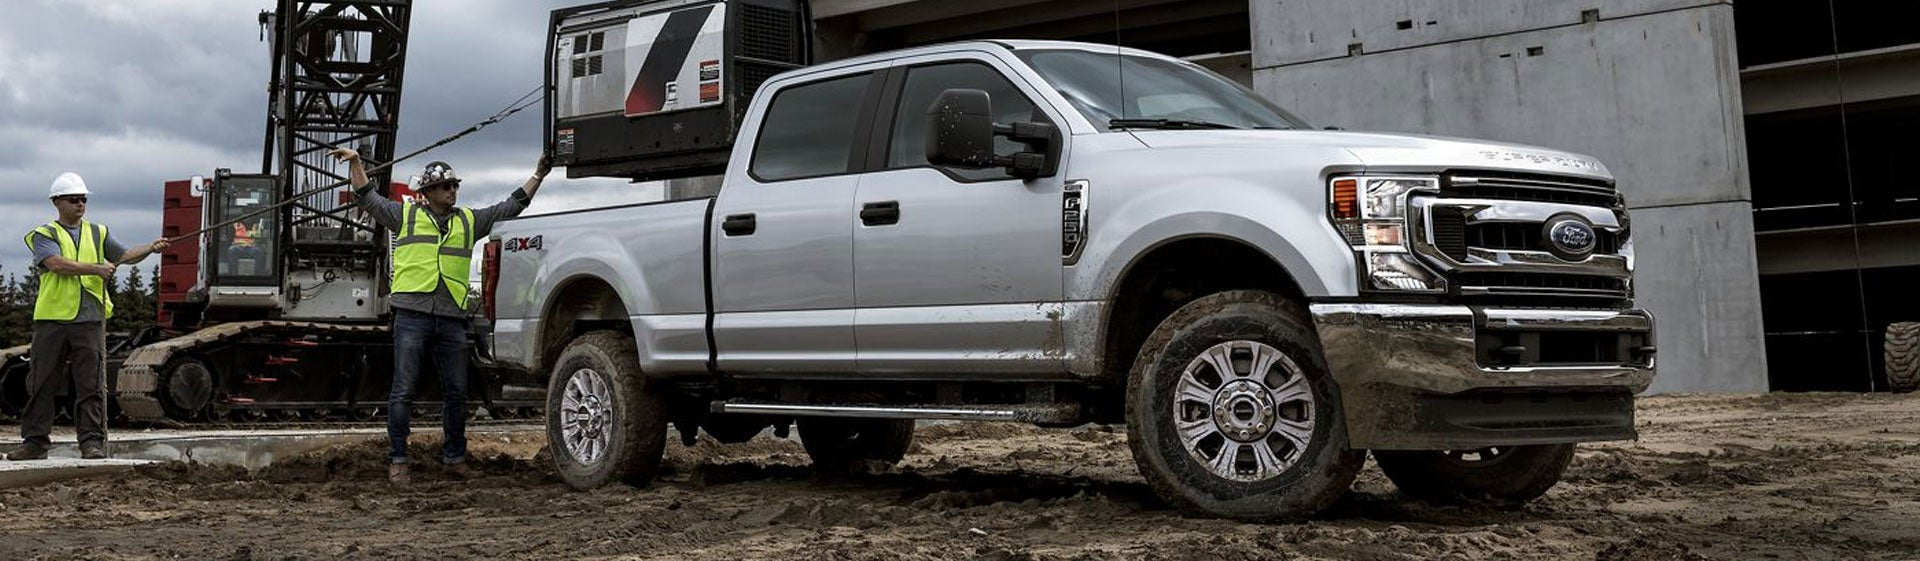 2020 Ford Super Duty F 250 Wiscasset Ford My Ford Dealership